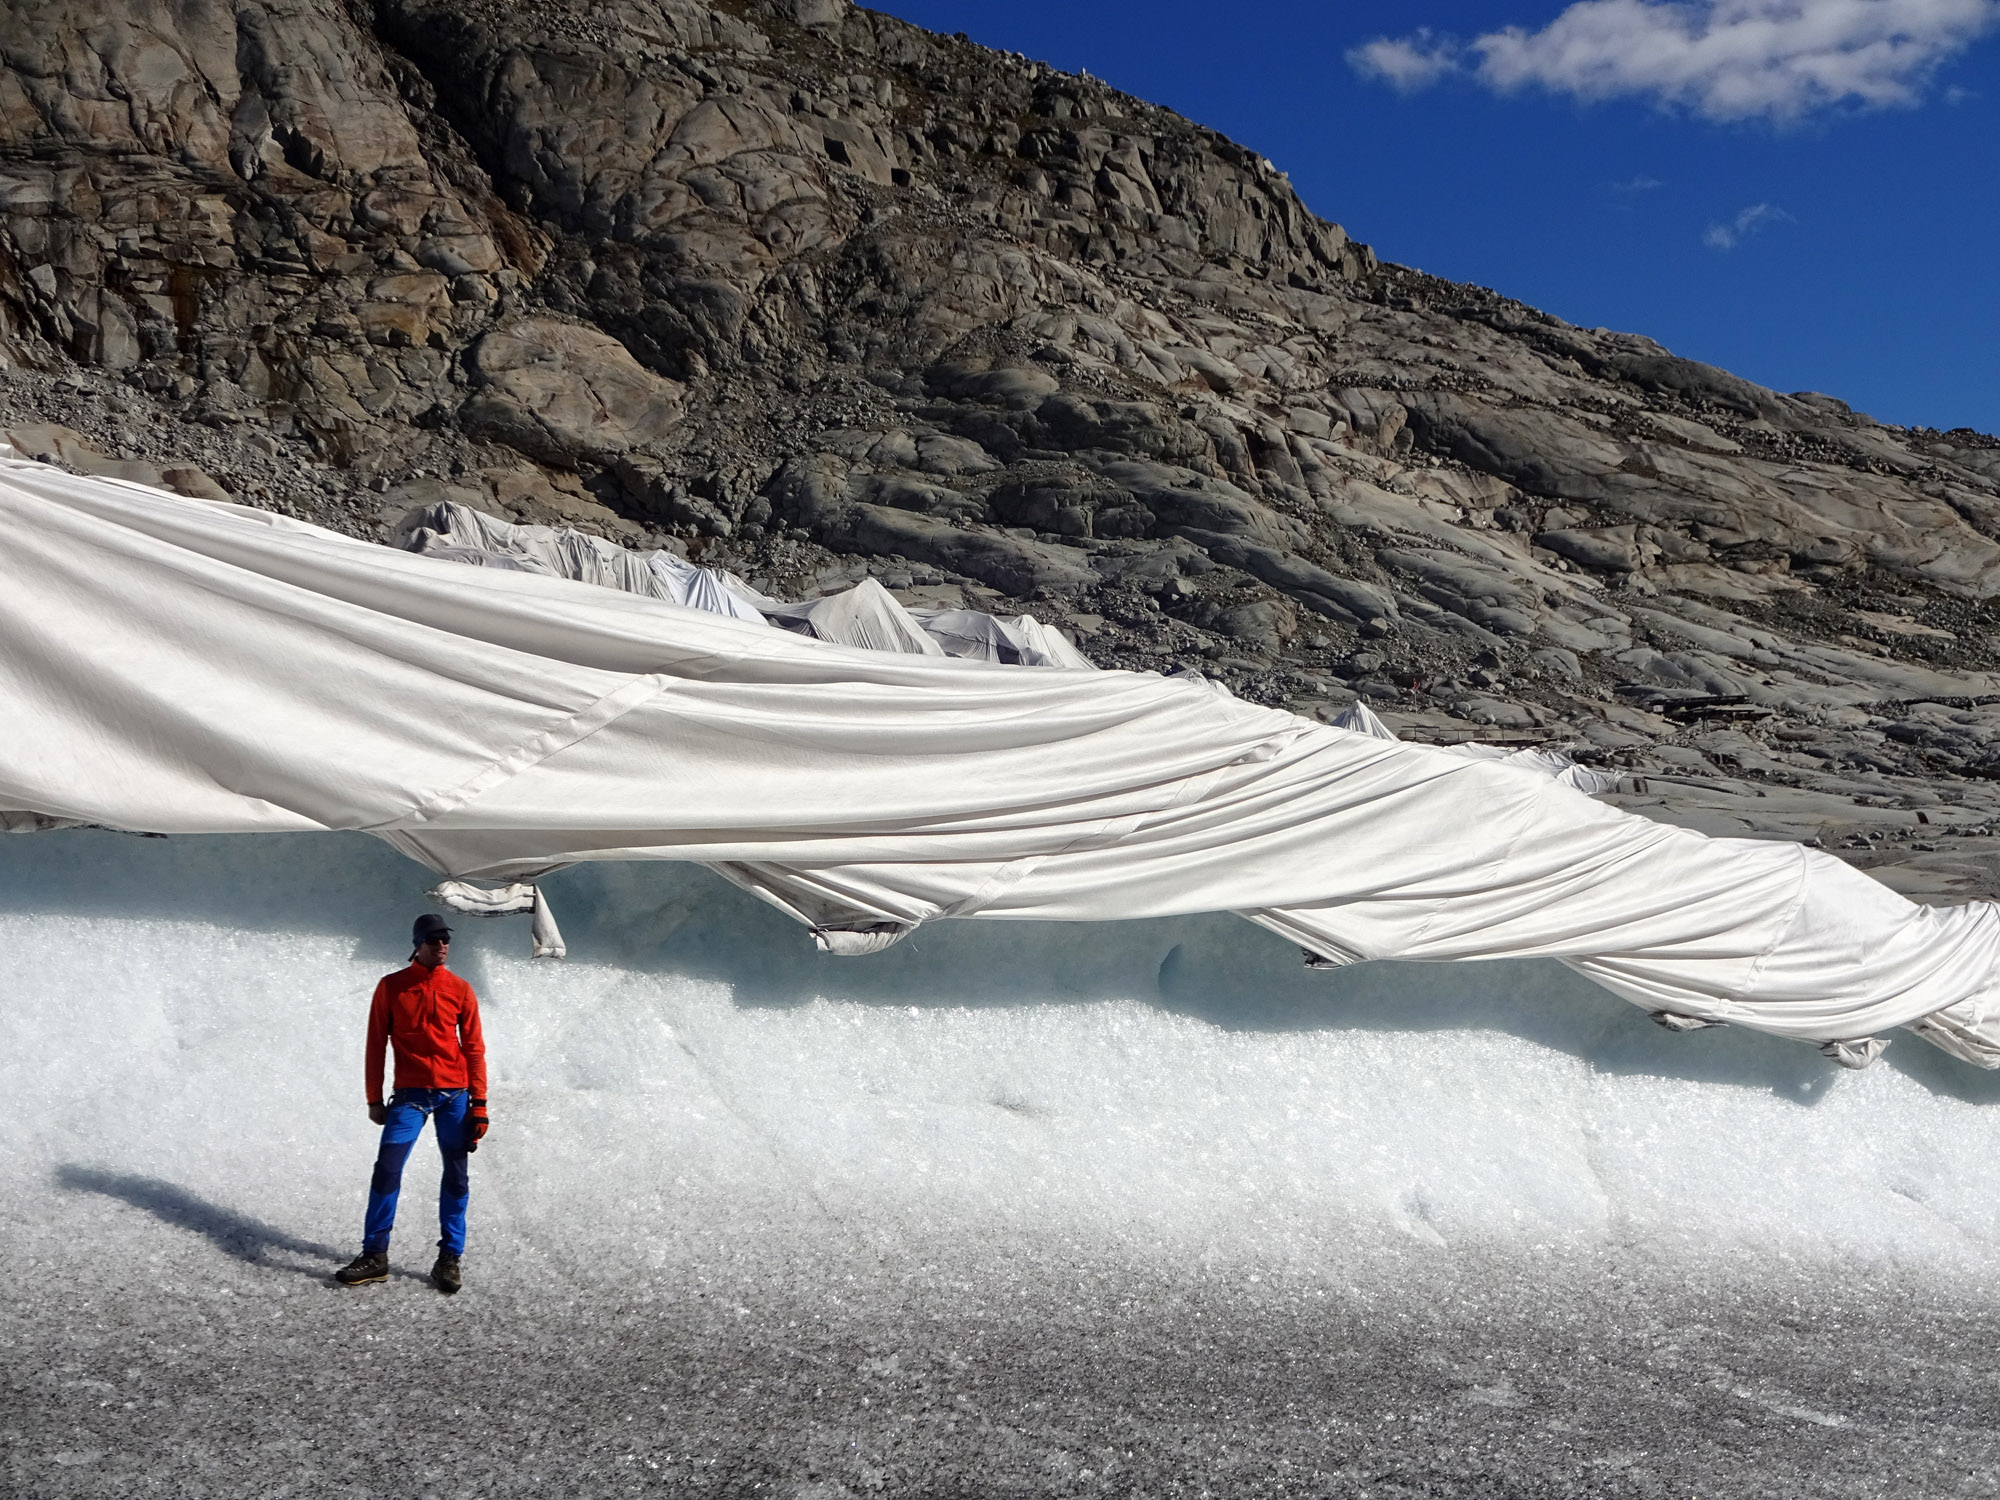 A person in a red coat stands in front of ice two times his height. The ice is covered with a white blanket.